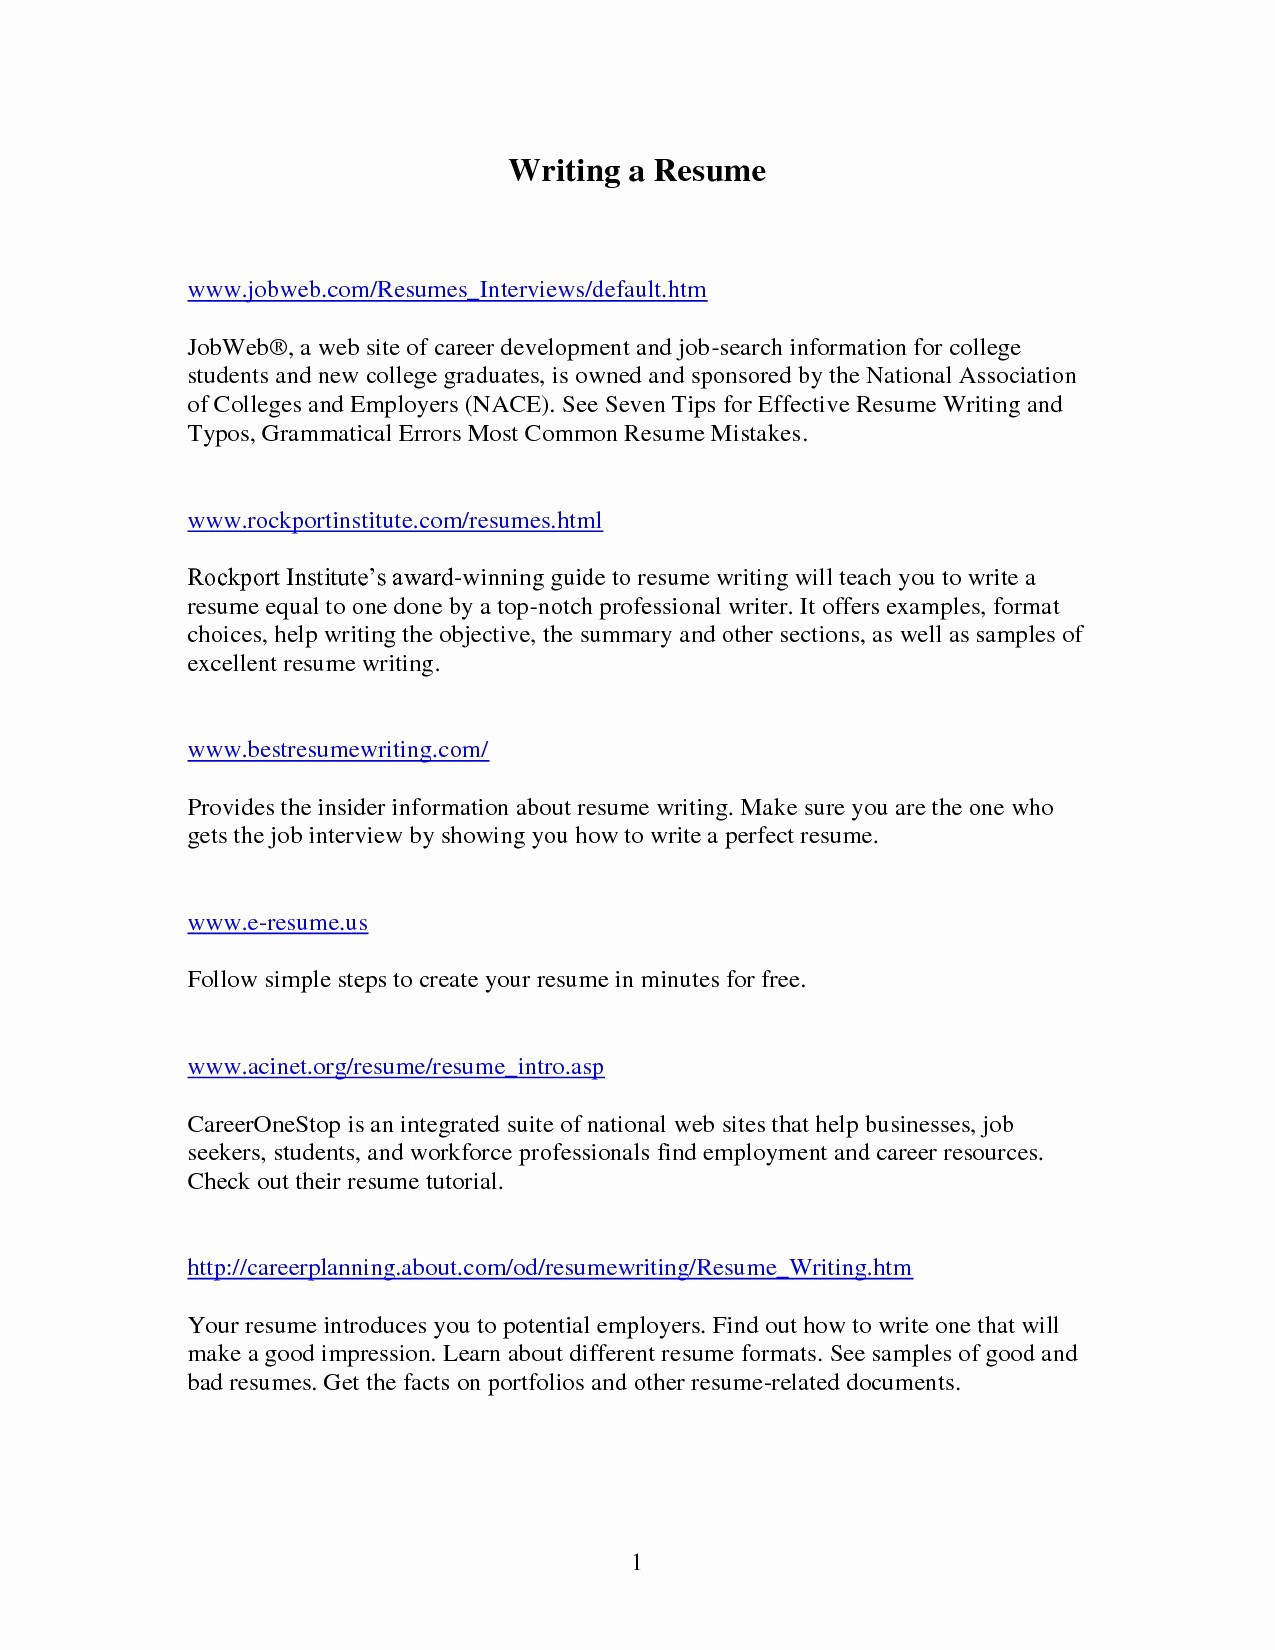 Best Place to Post Resume Online - 16 Resume Builder Free Download